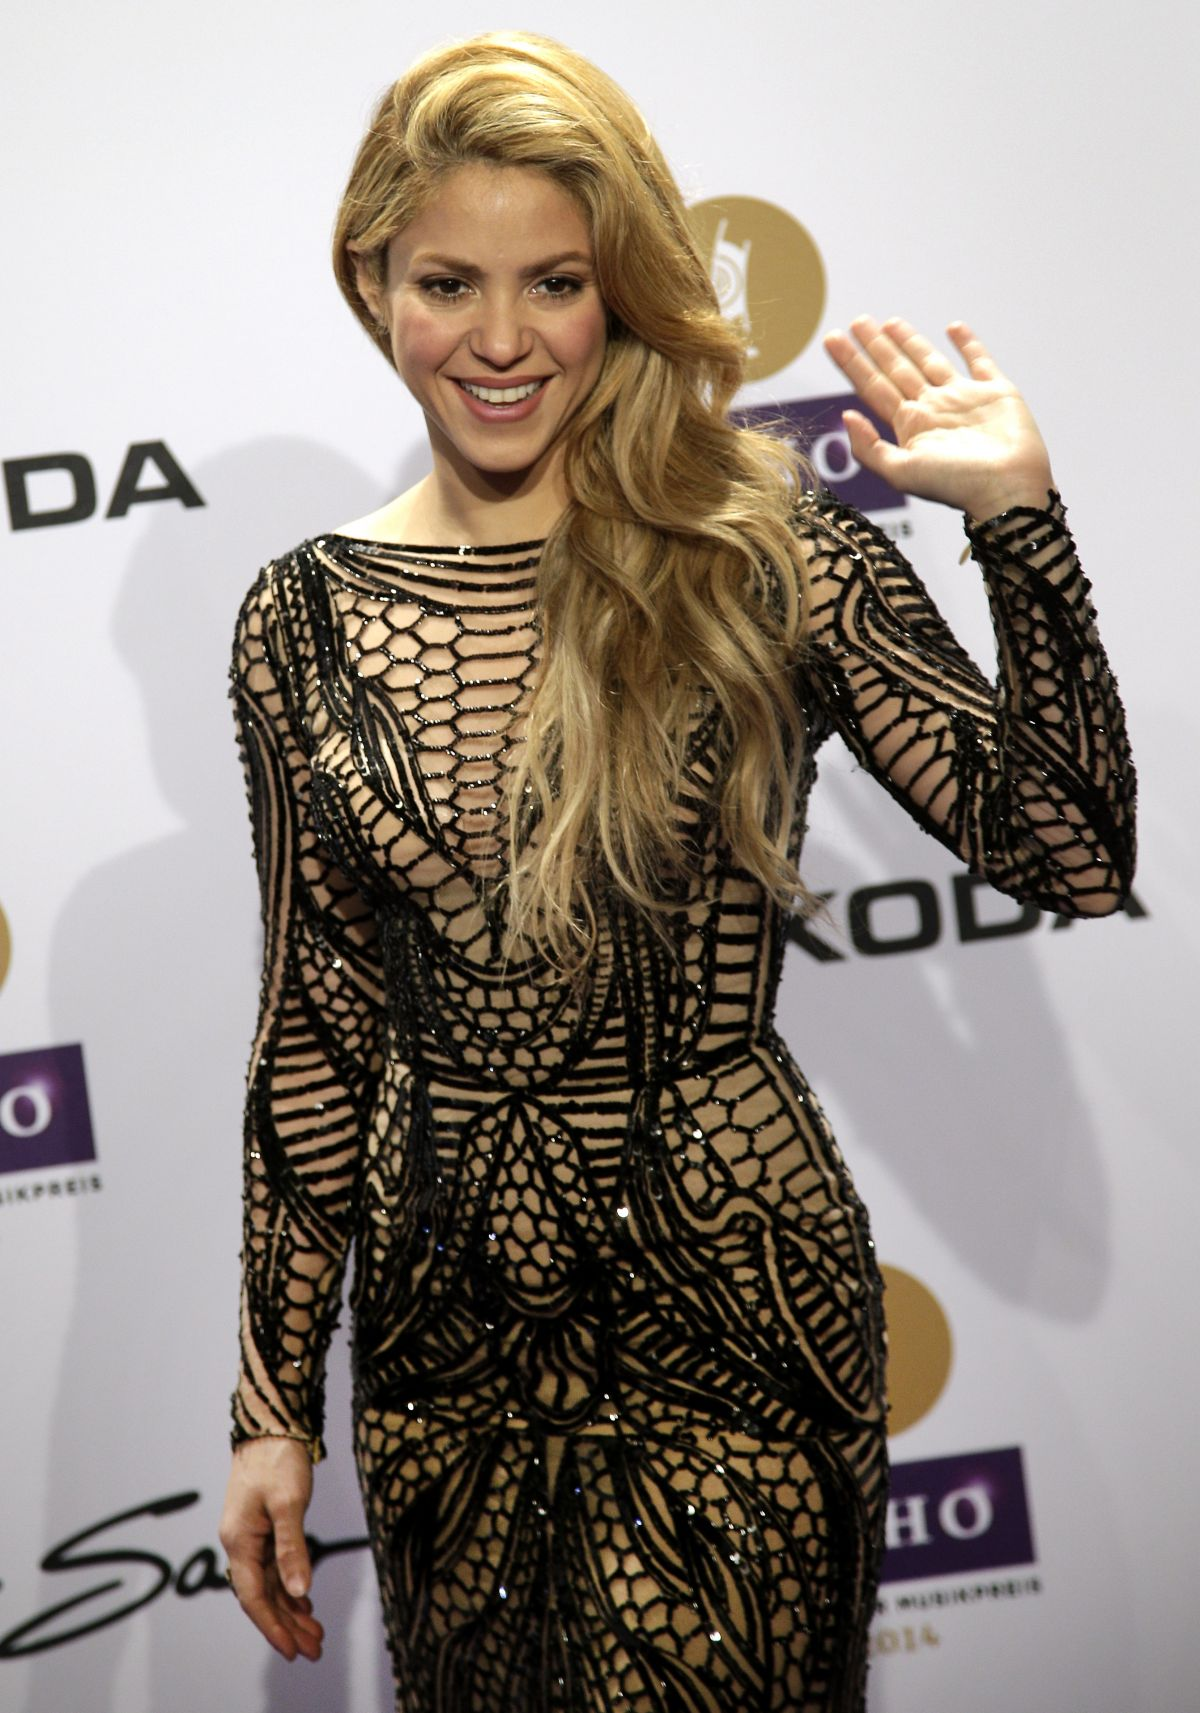 SHAKIRA at at 2014 Echo Music Awards in Berlin